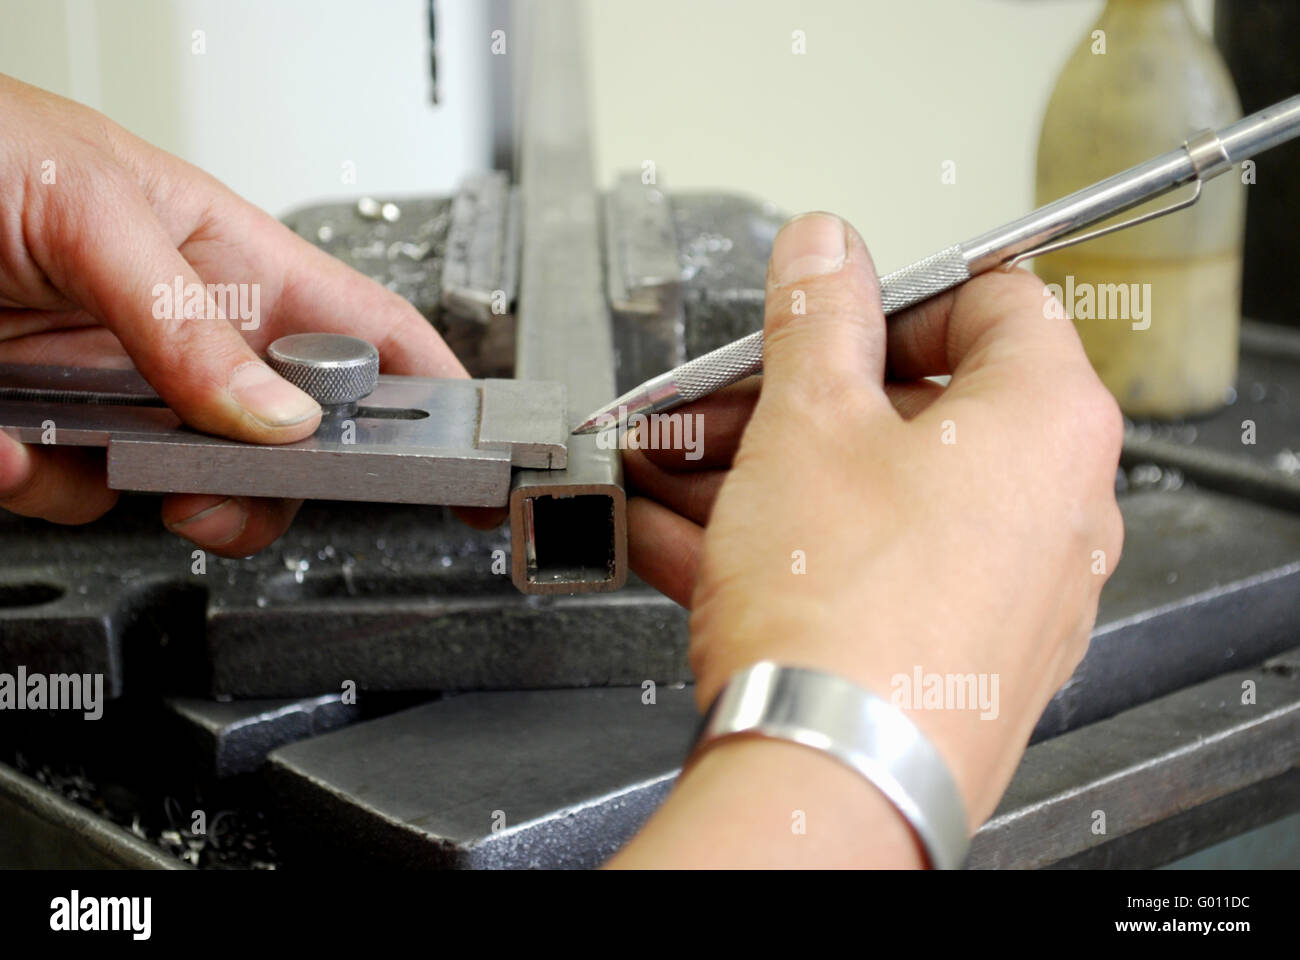 metalworker measuring a metal piece for drilling - Stock Image